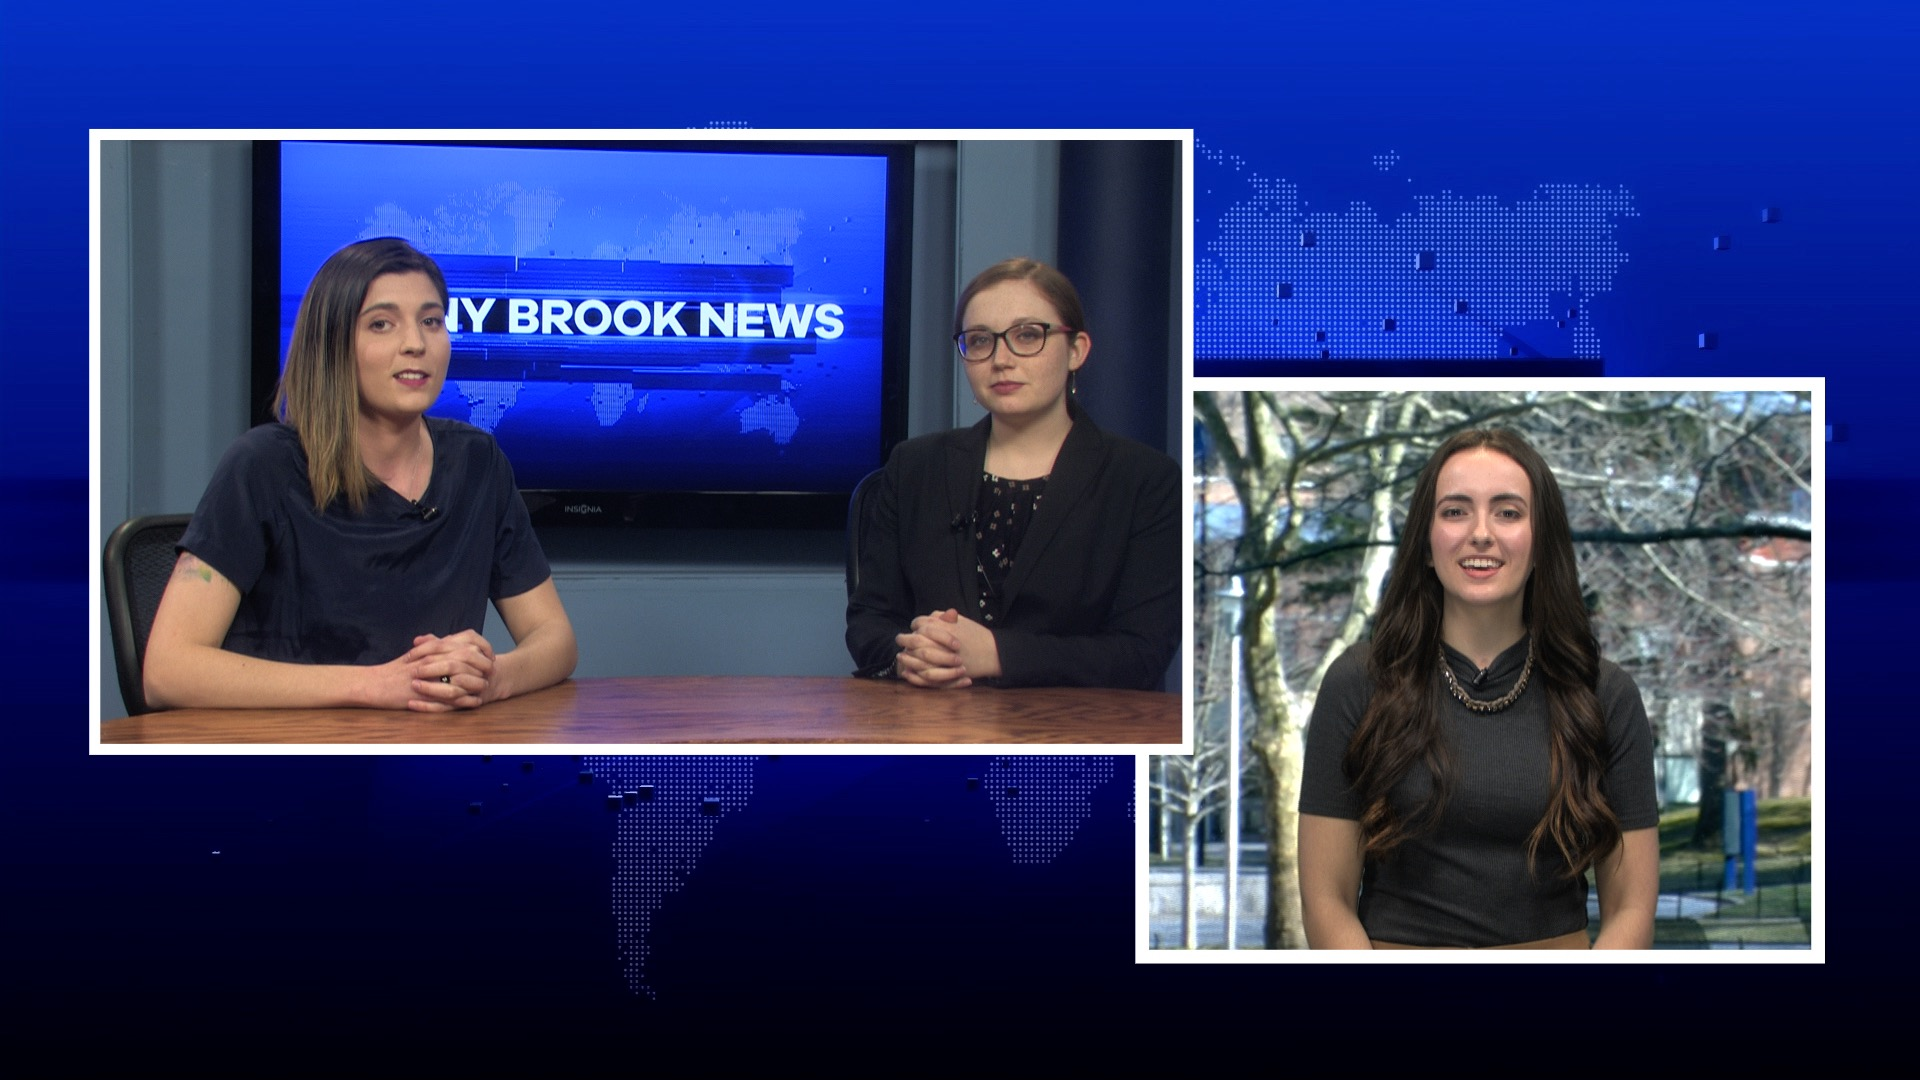 Stony Brook Newsbrek April 3, 2019